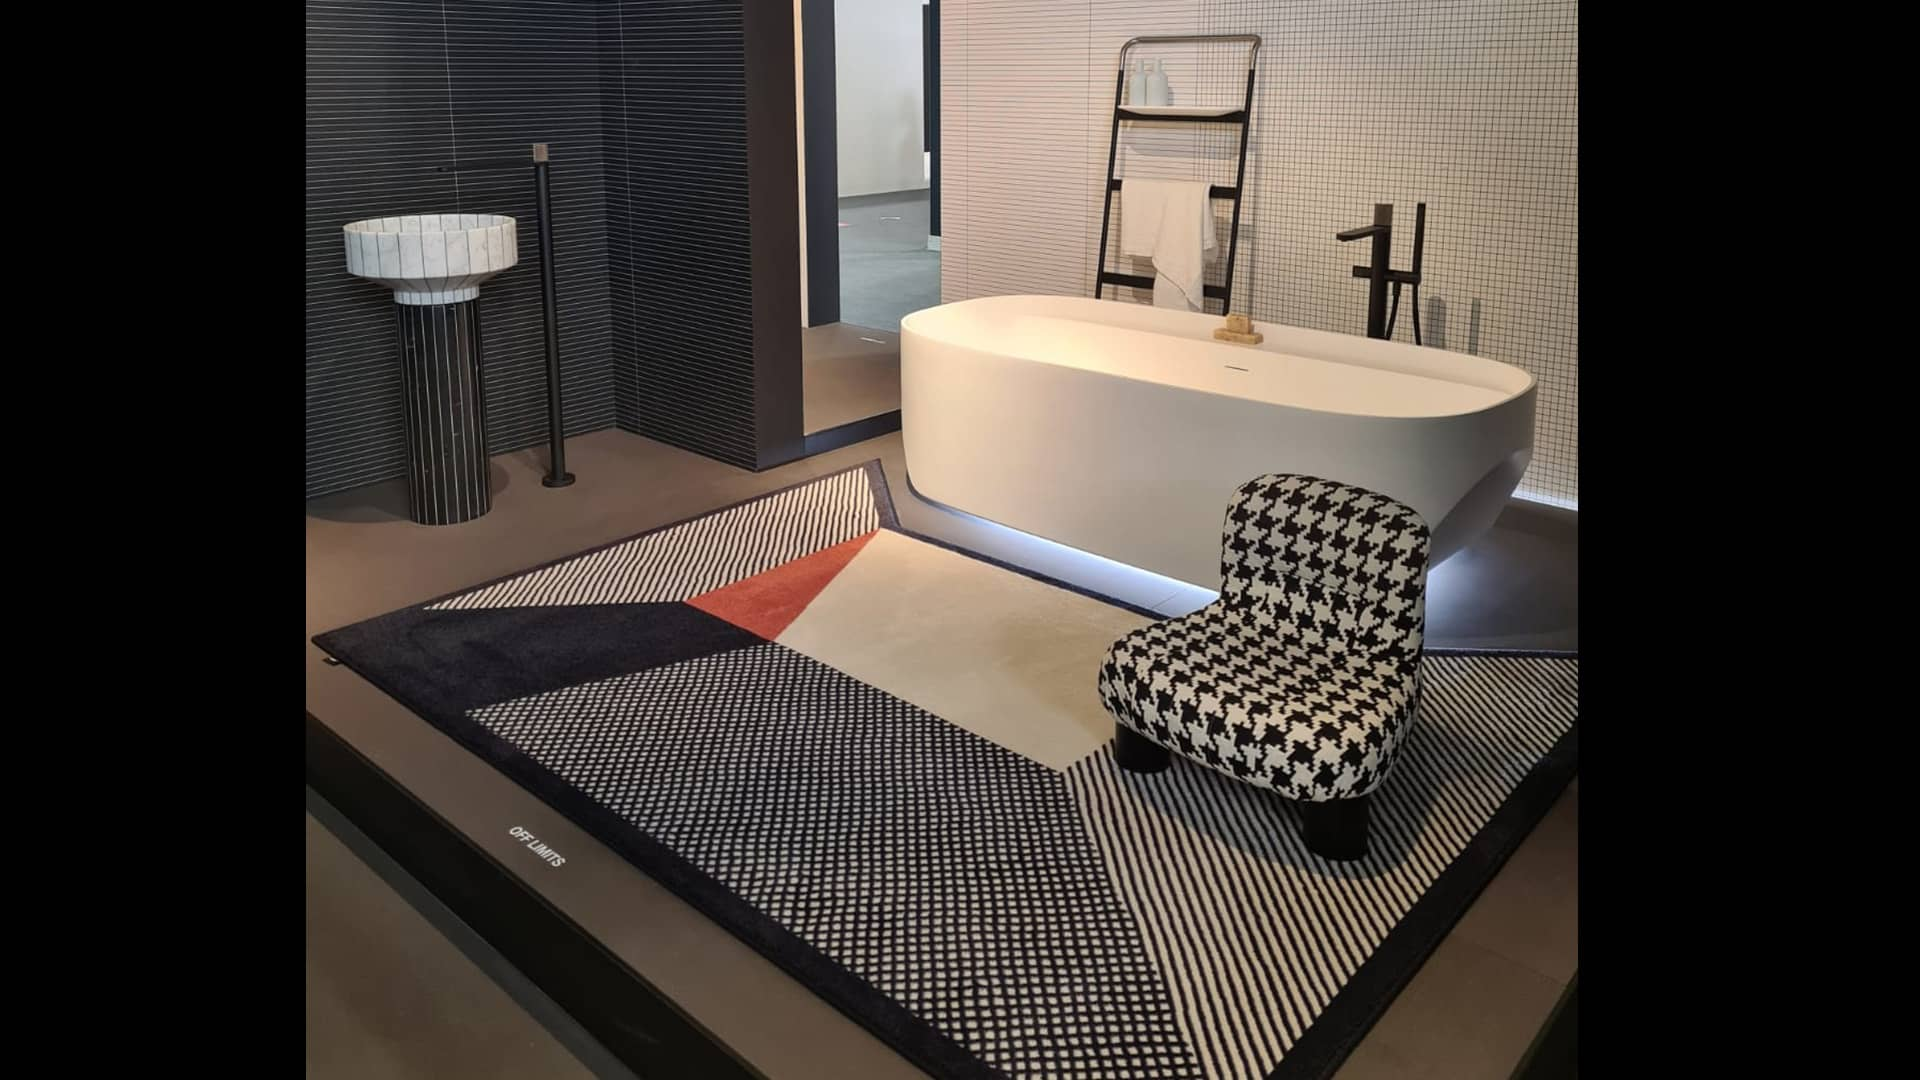 A peek into Antonio Lupi's new collection, Borghi at Cersaie 2021